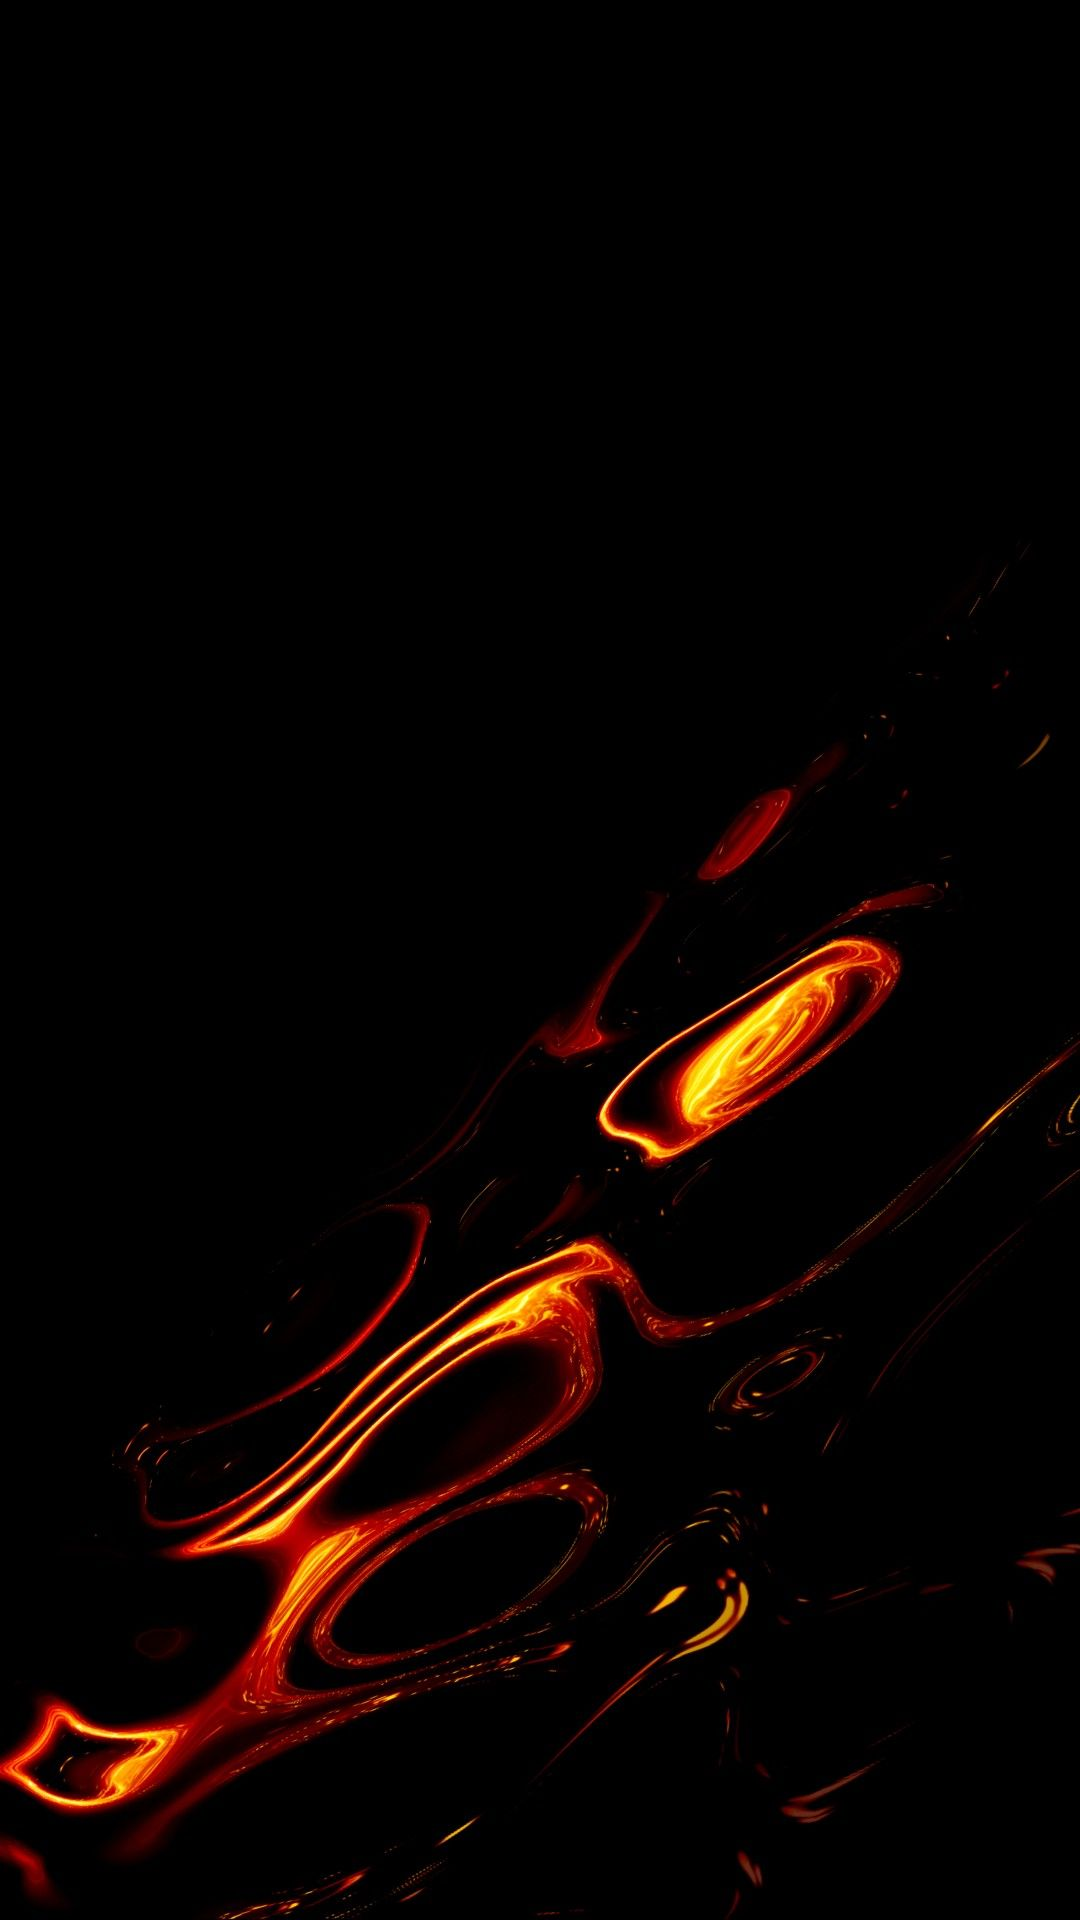 Wallpaper Iphone Black Wallpaper Is An Android App For Phones And Tablets Which Contain Black And White Black Wallpaper Pattern Wallpaper Cellphone Wallpaper